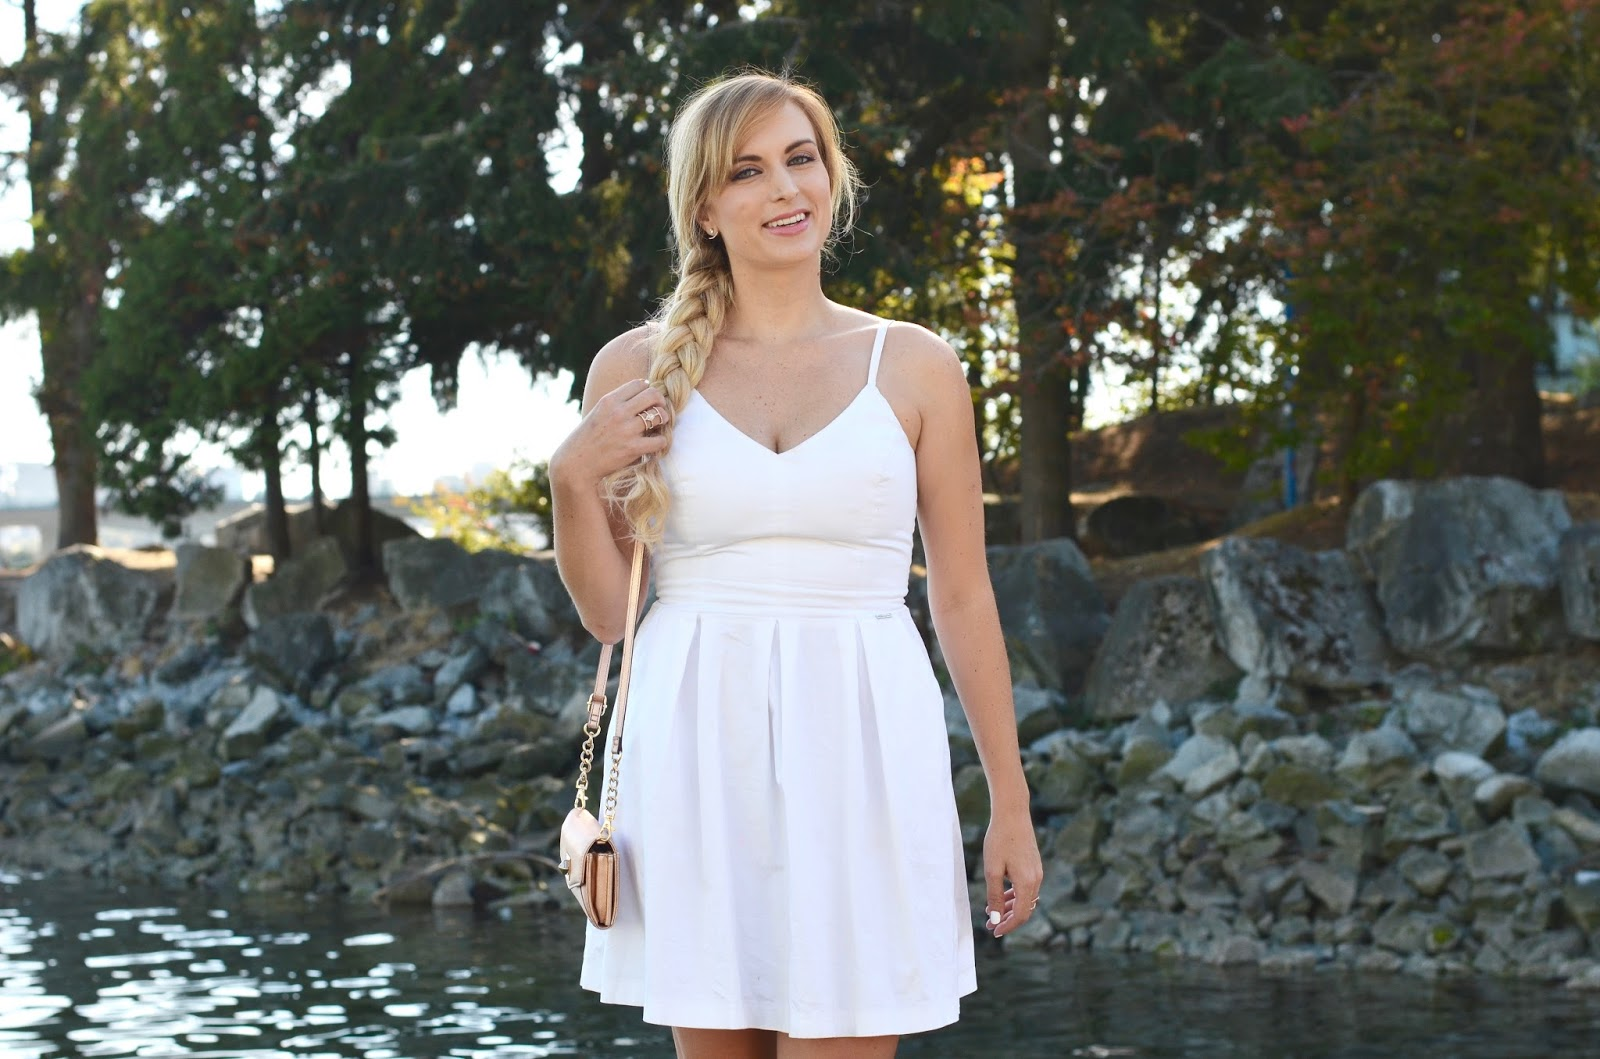 diner en blanc vancouver outfit